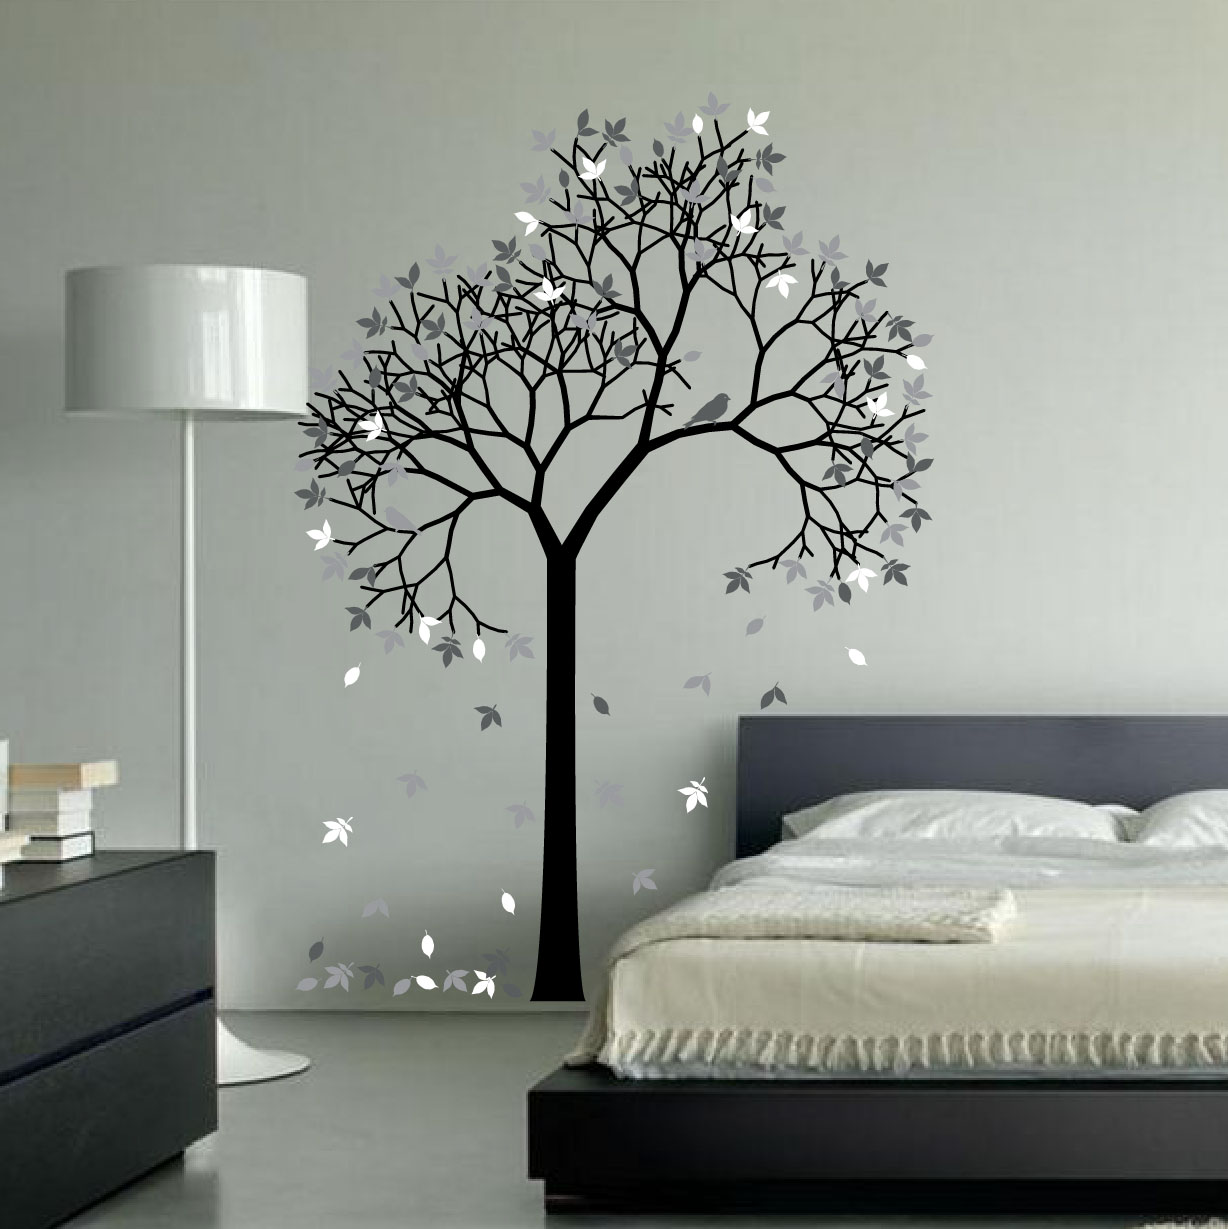 Good 1267 Tree Wall Decal Bedroom